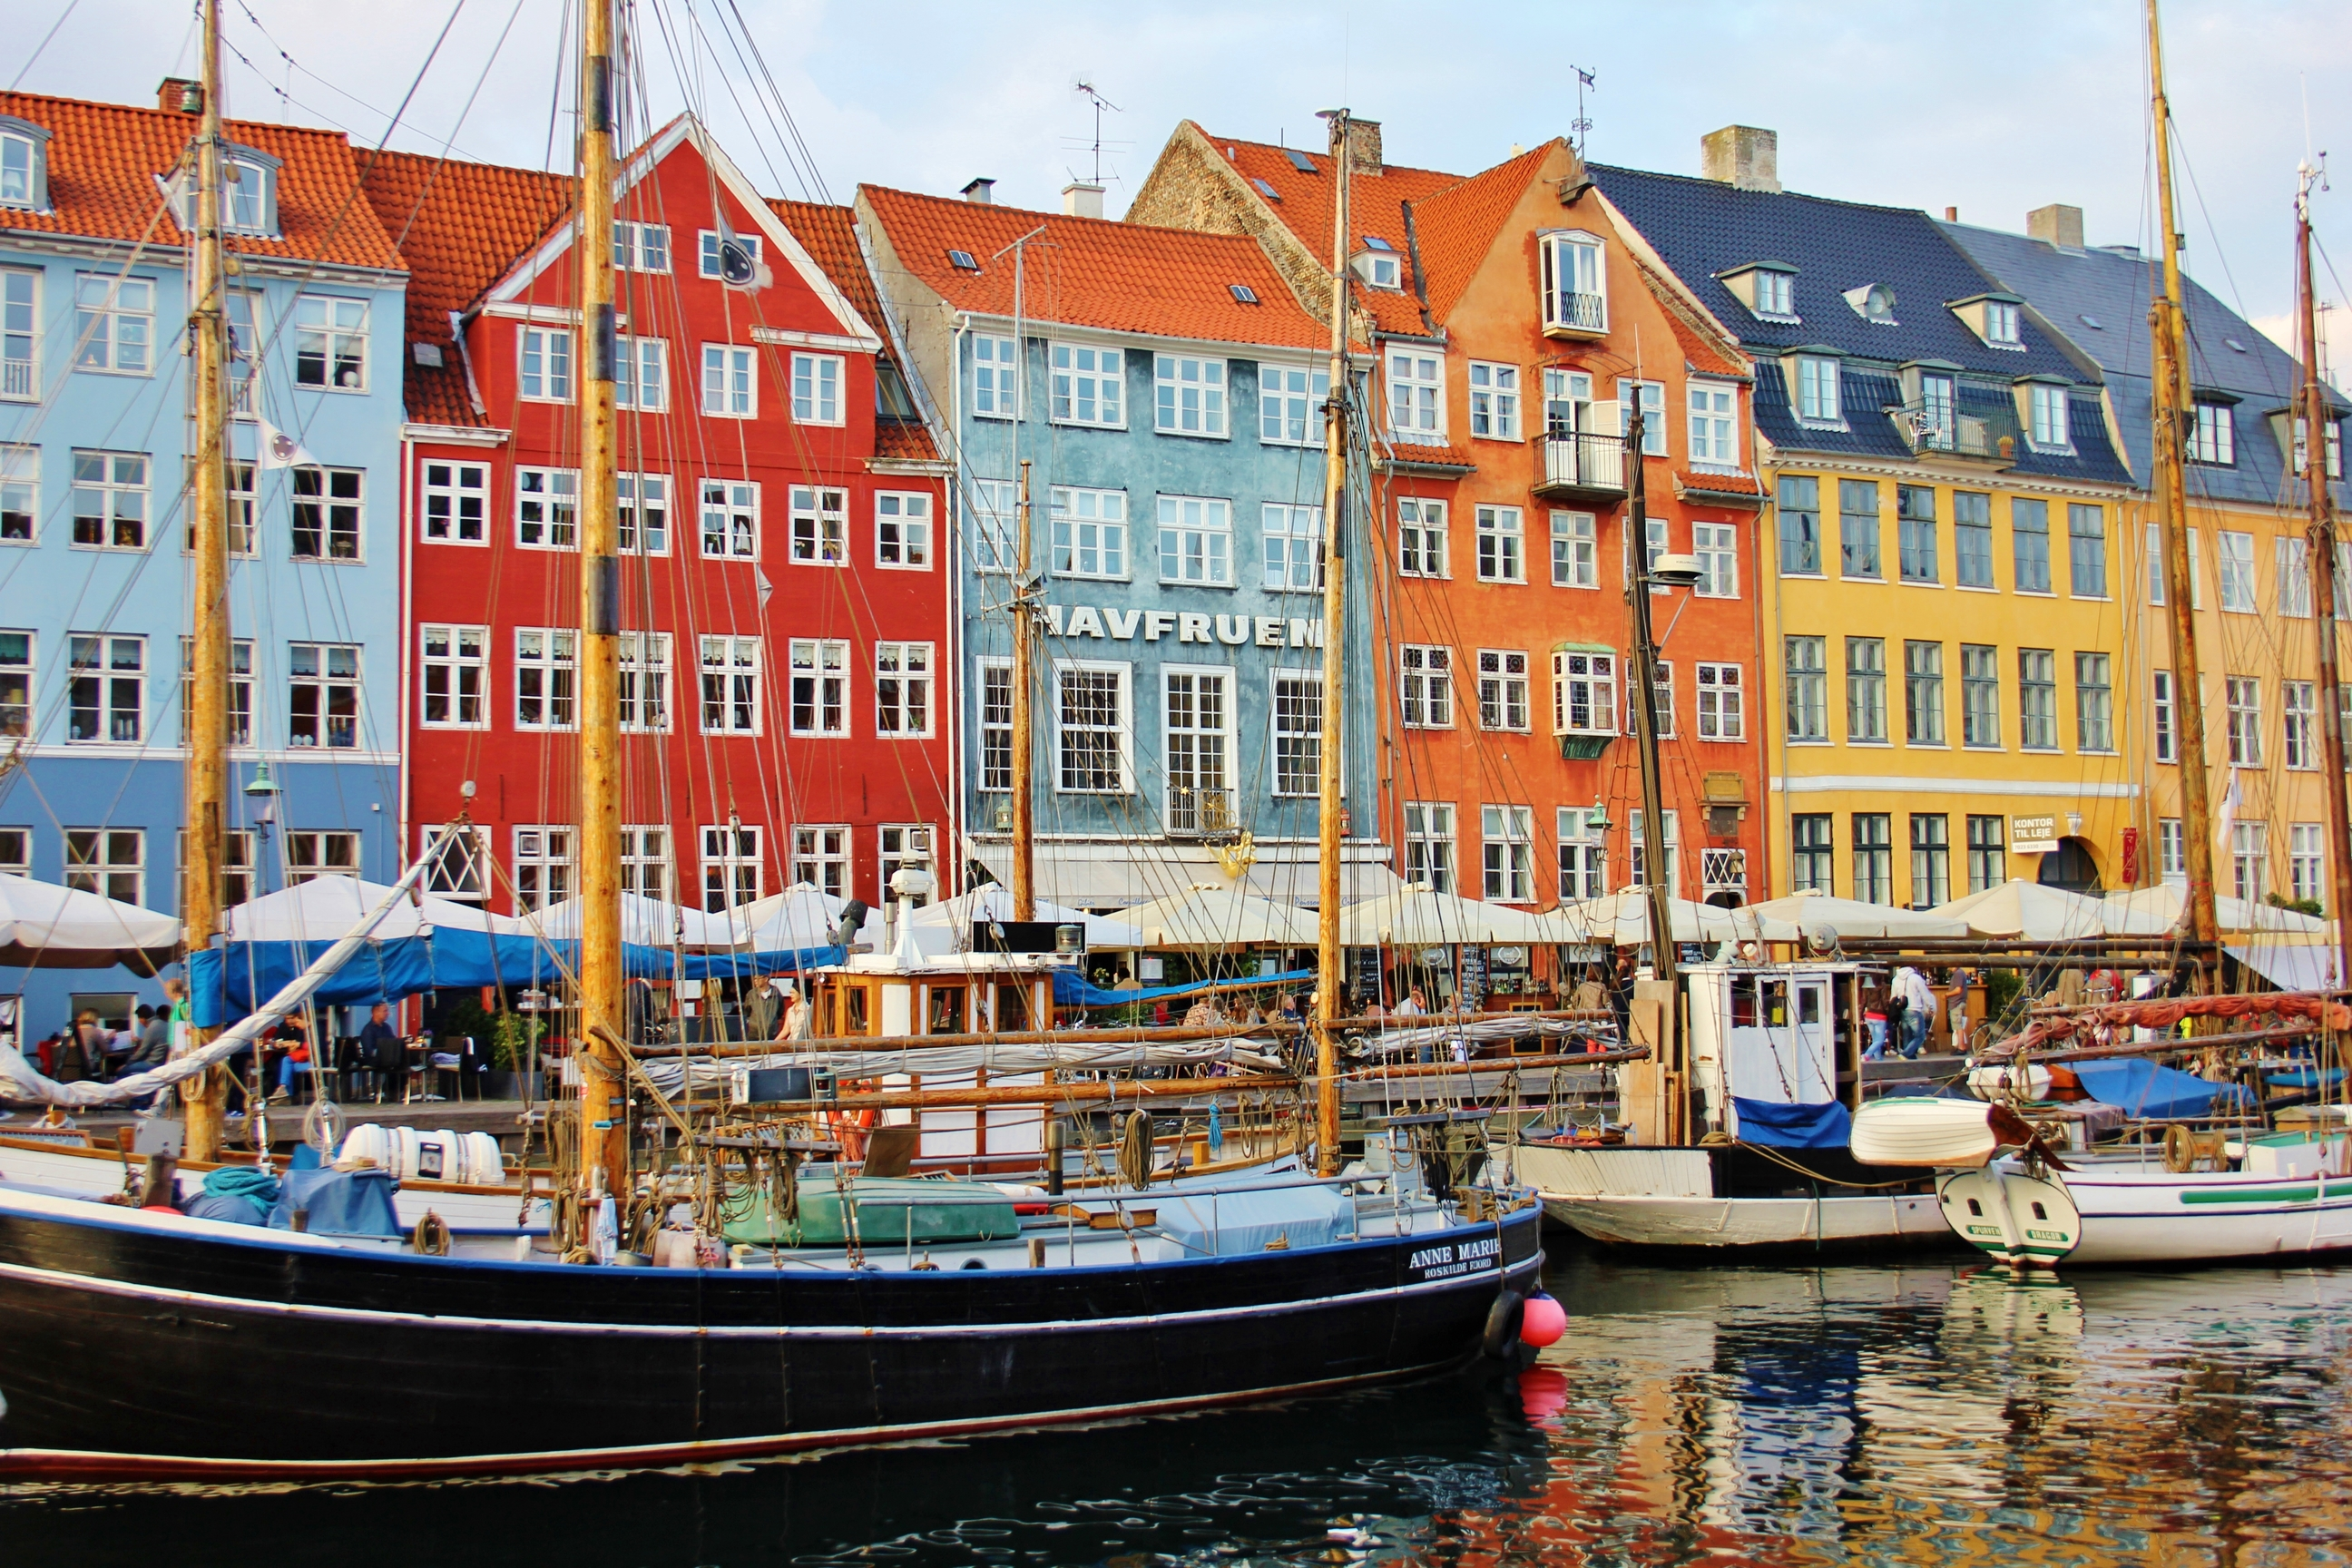 10 must see and do attractions in copenhagen the culture map. Black Bedroom Furniture Sets. Home Design Ideas